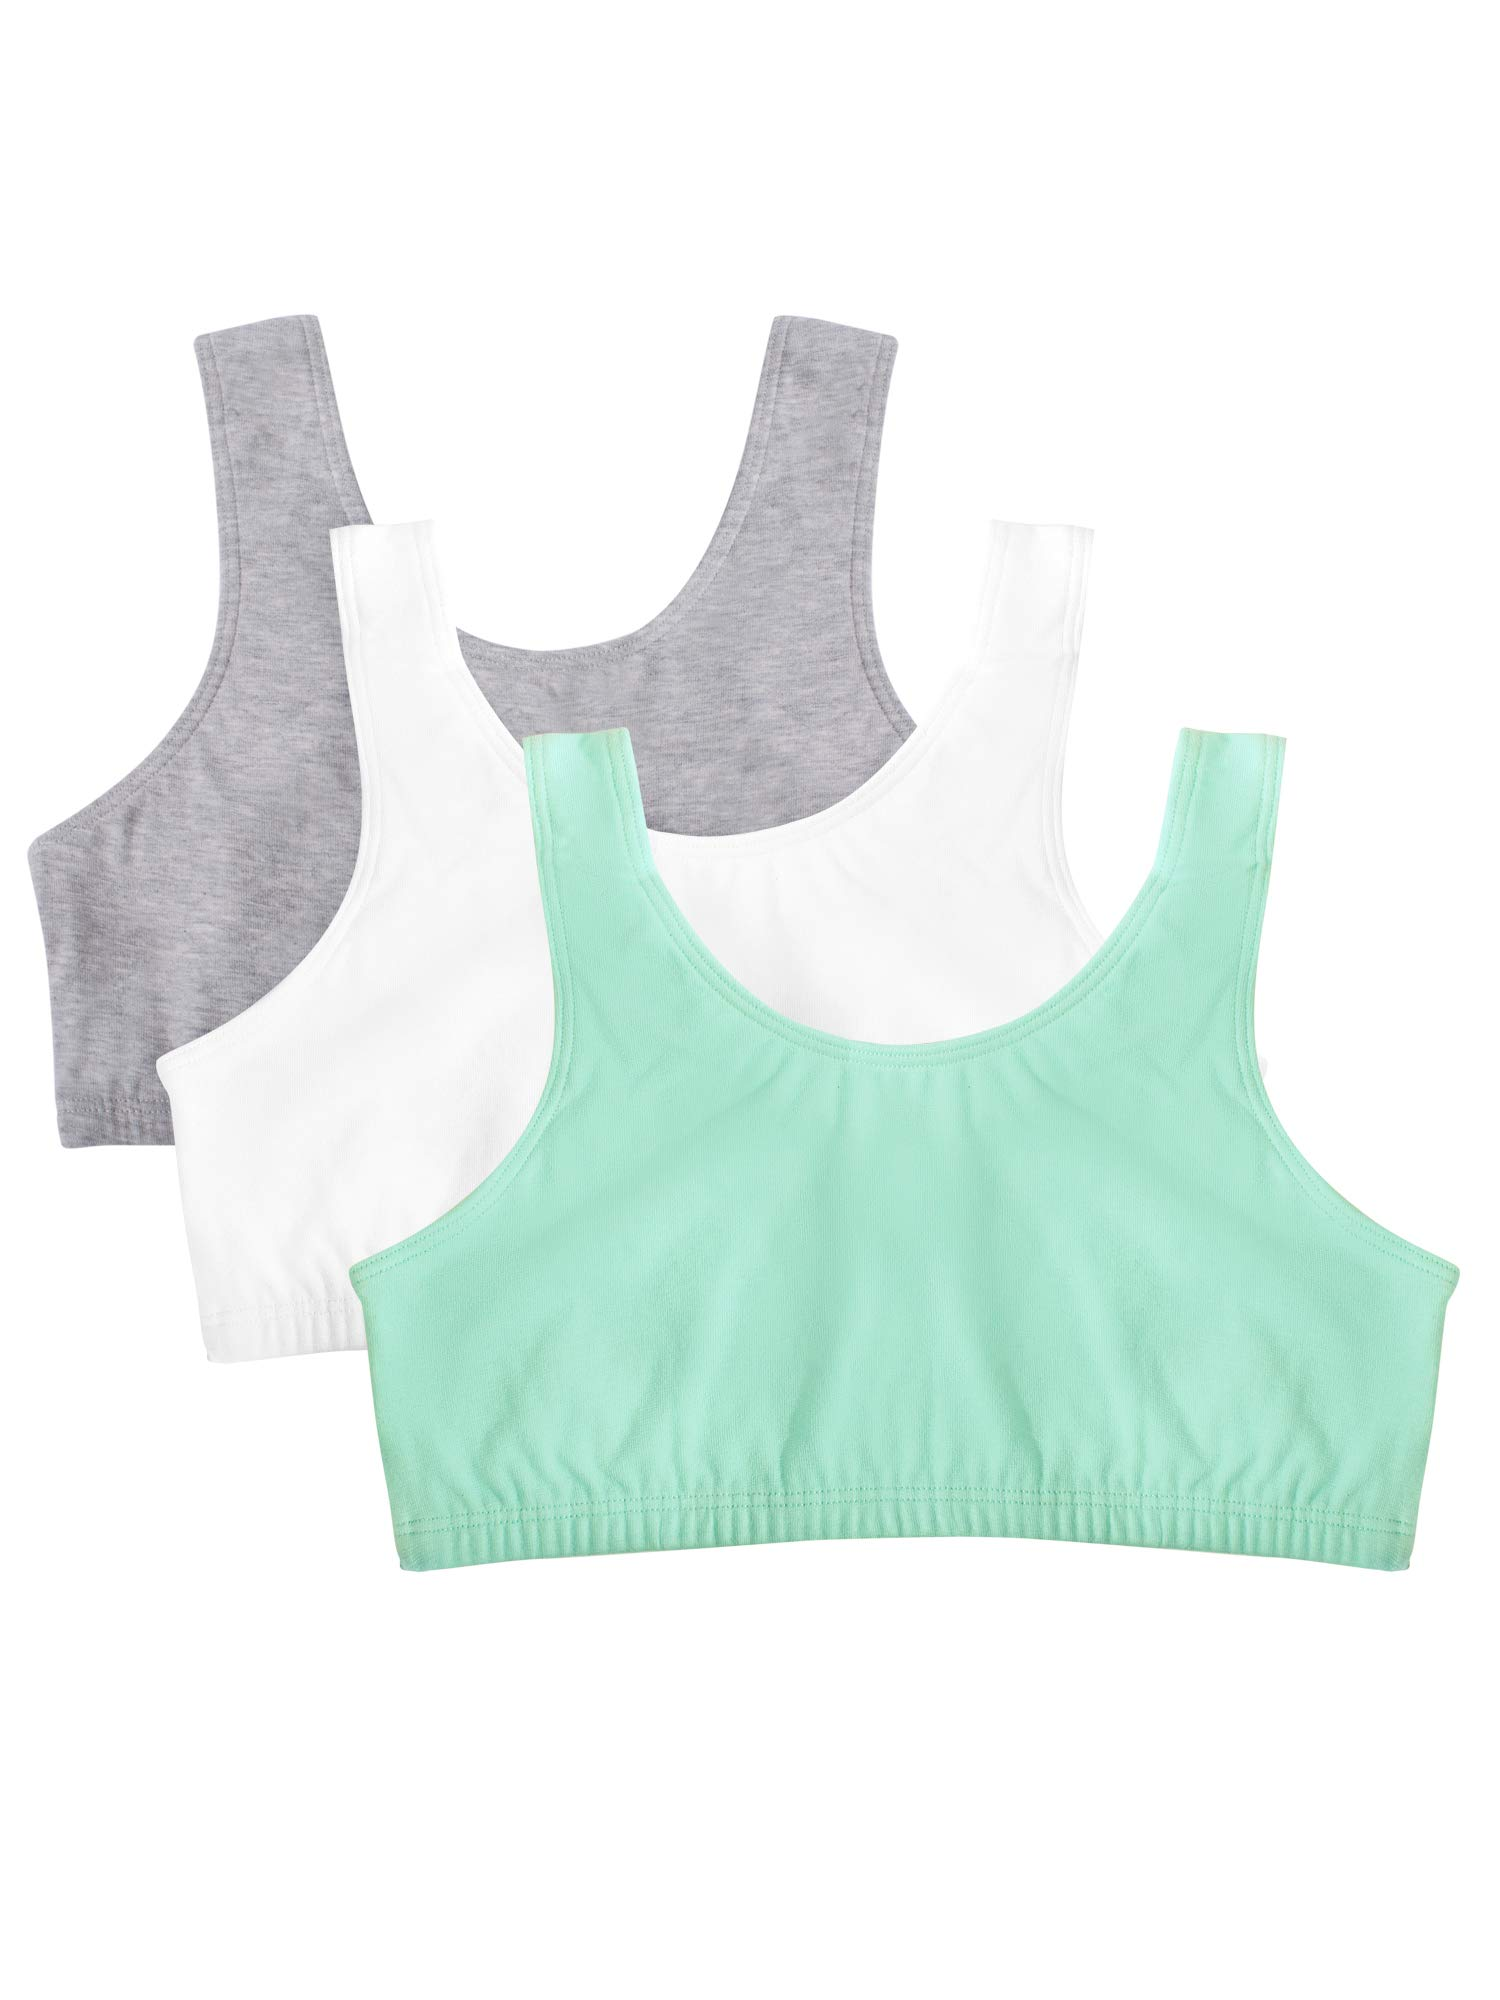 Fruit of the Loom Women's Built-Up Sports Bra 3 Pack Bra, Mint chip/White/Grey Heather, 40 by Fruit of the Loom